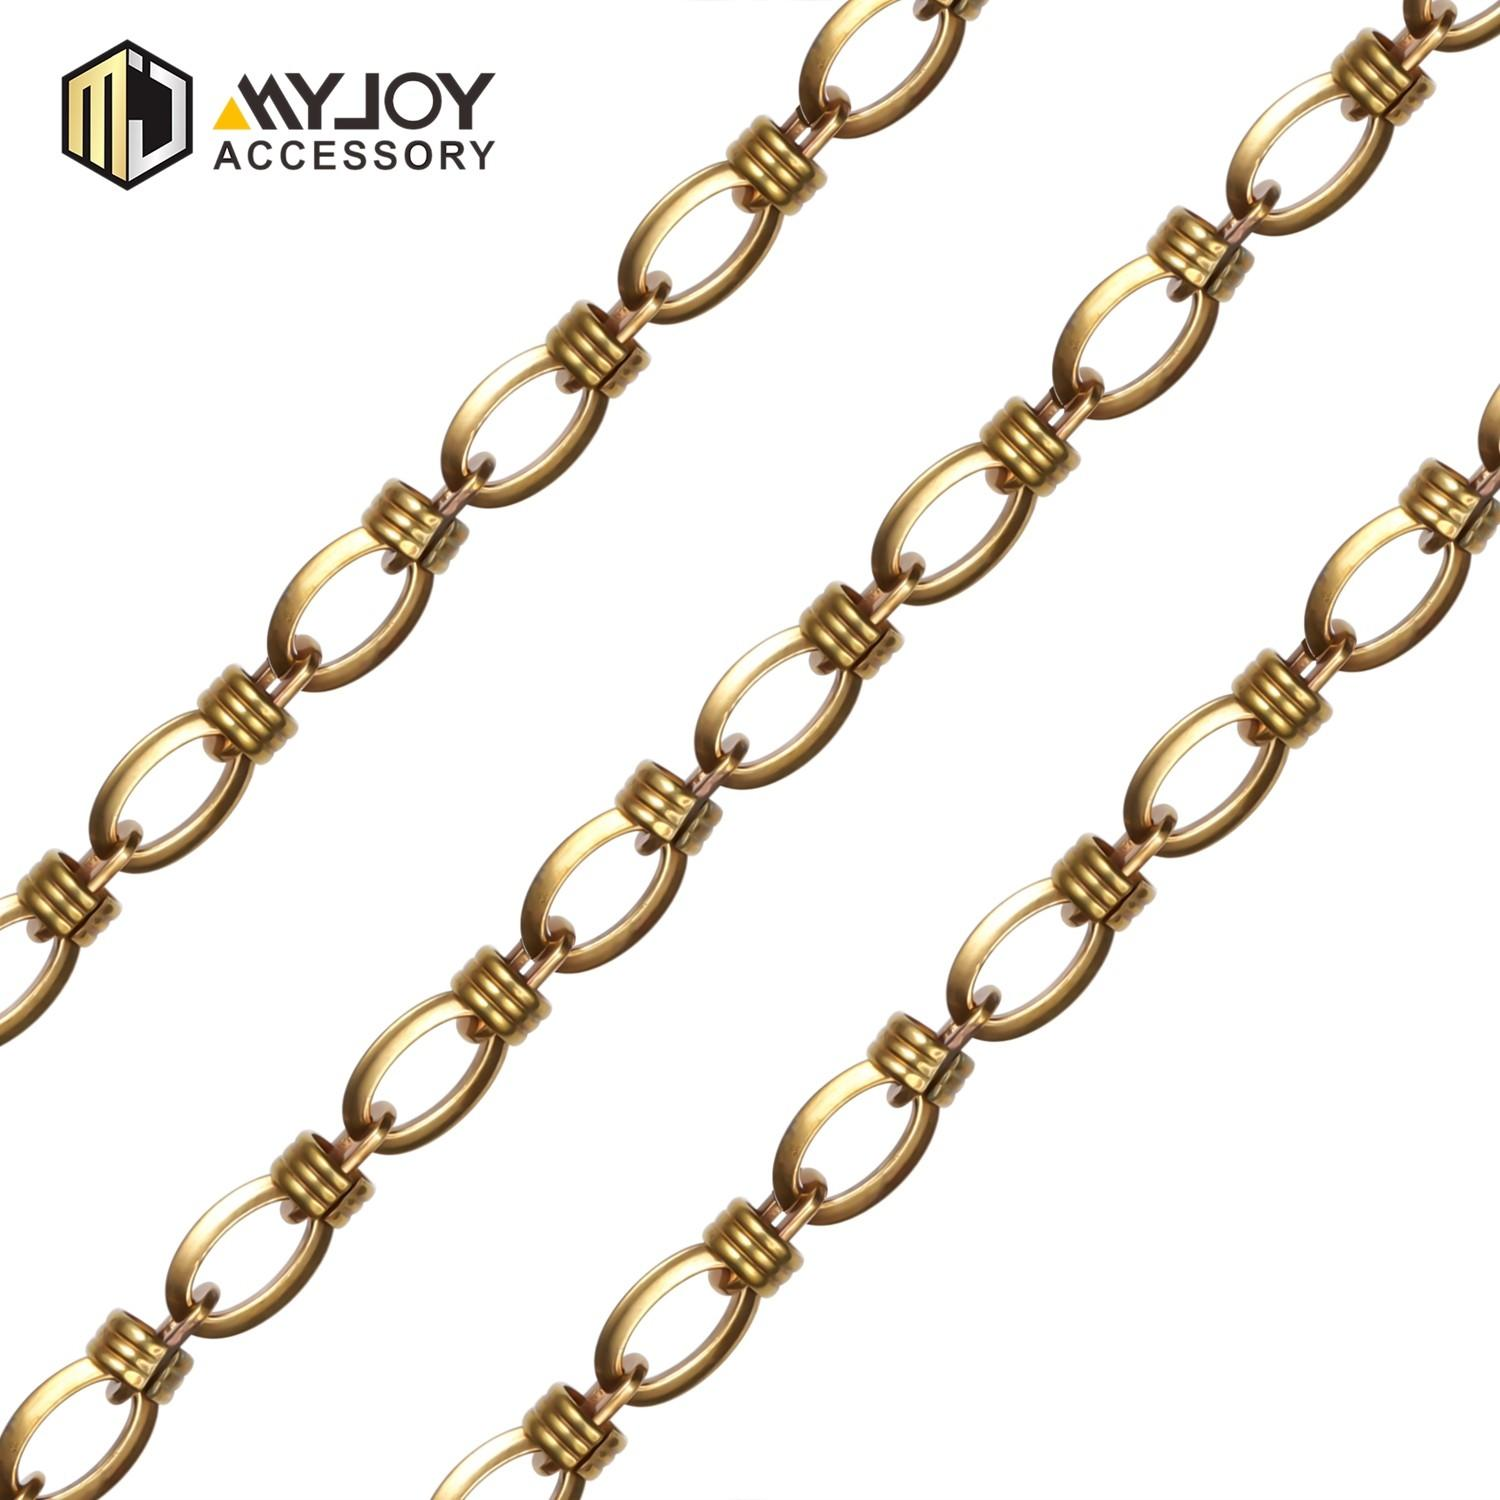 stable bag chain chain suppliers for bags-3